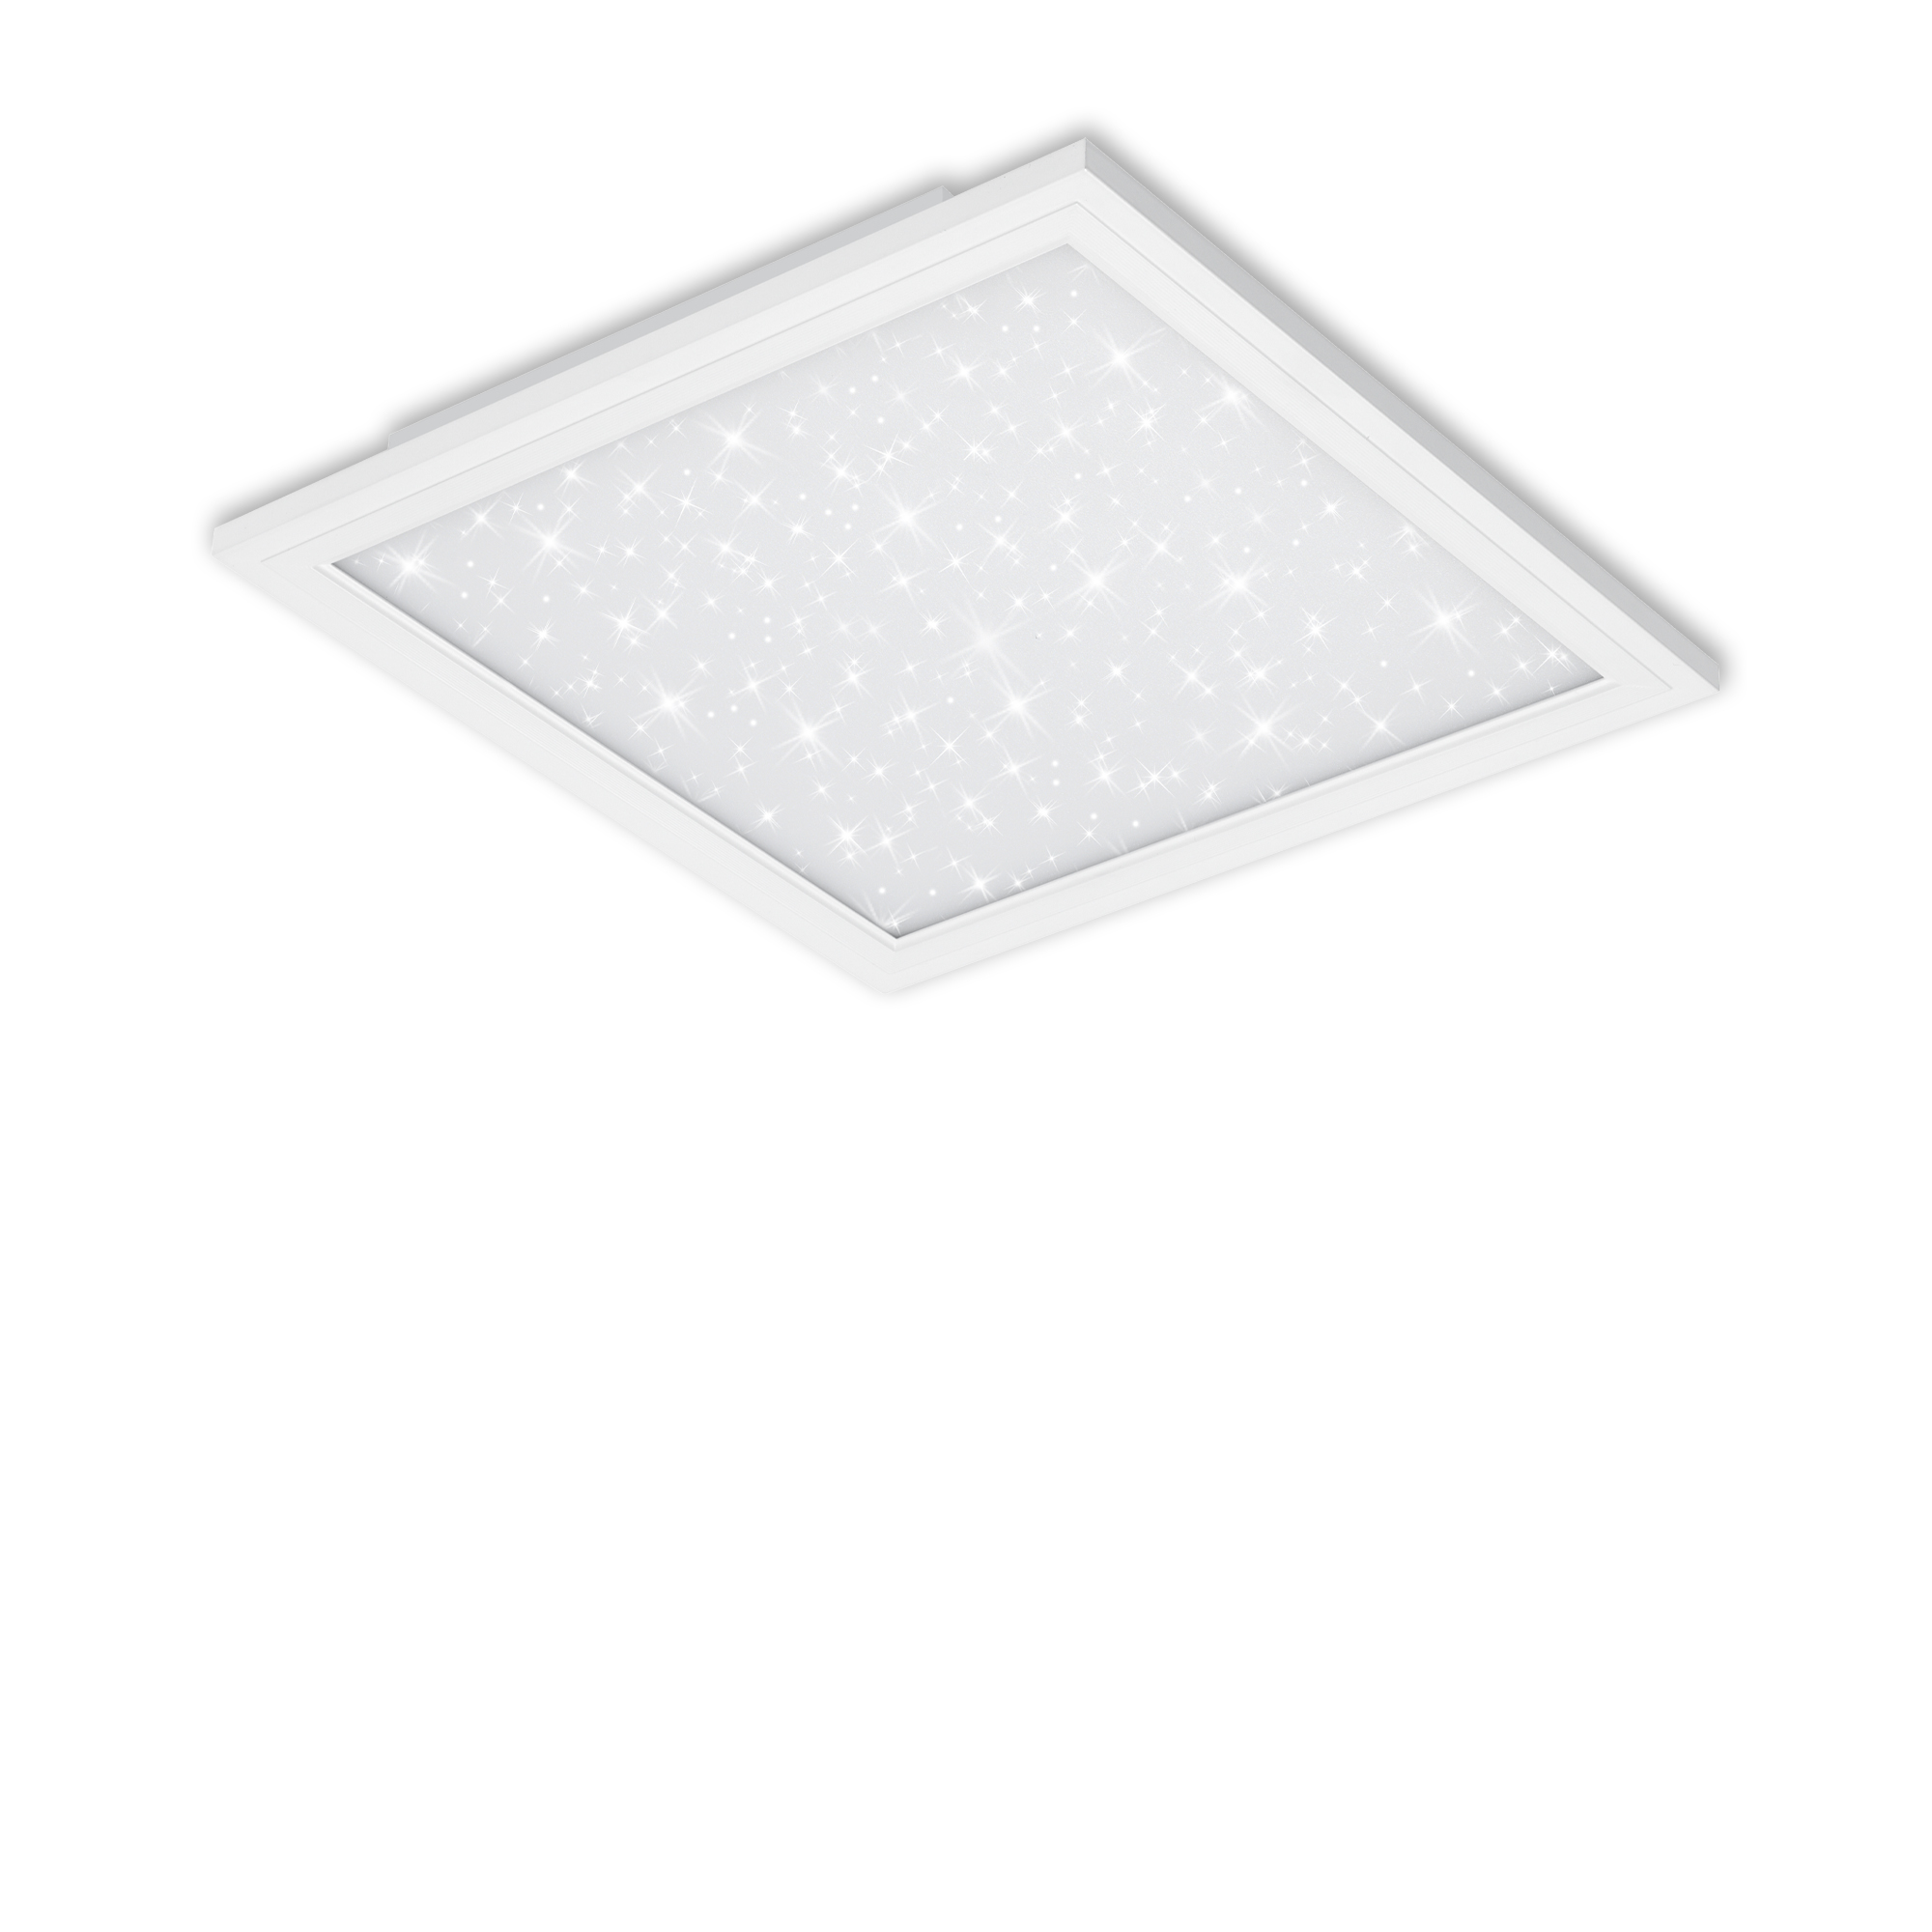 STERNENHIMMEL LED Panel, 29,5 cm, 1300 LUMEN, 12 WATT, Weiss